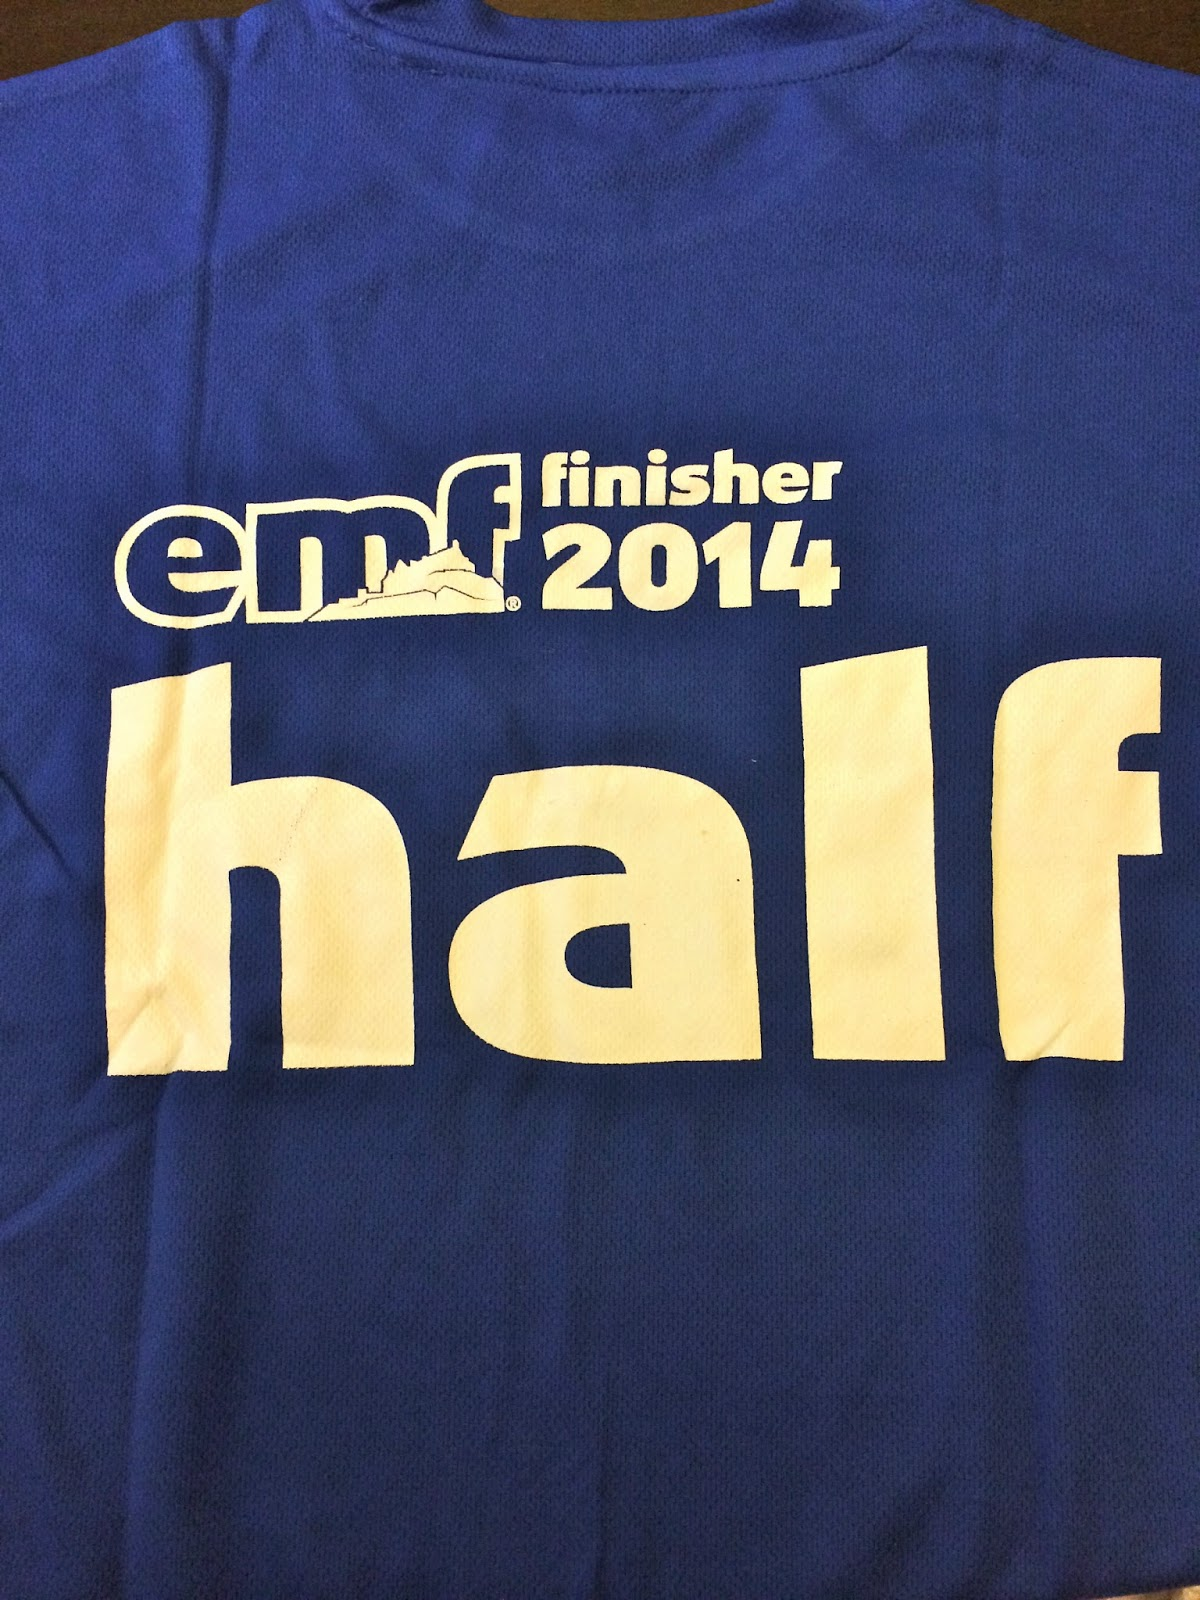 Edinburgh half marathon runner 2014